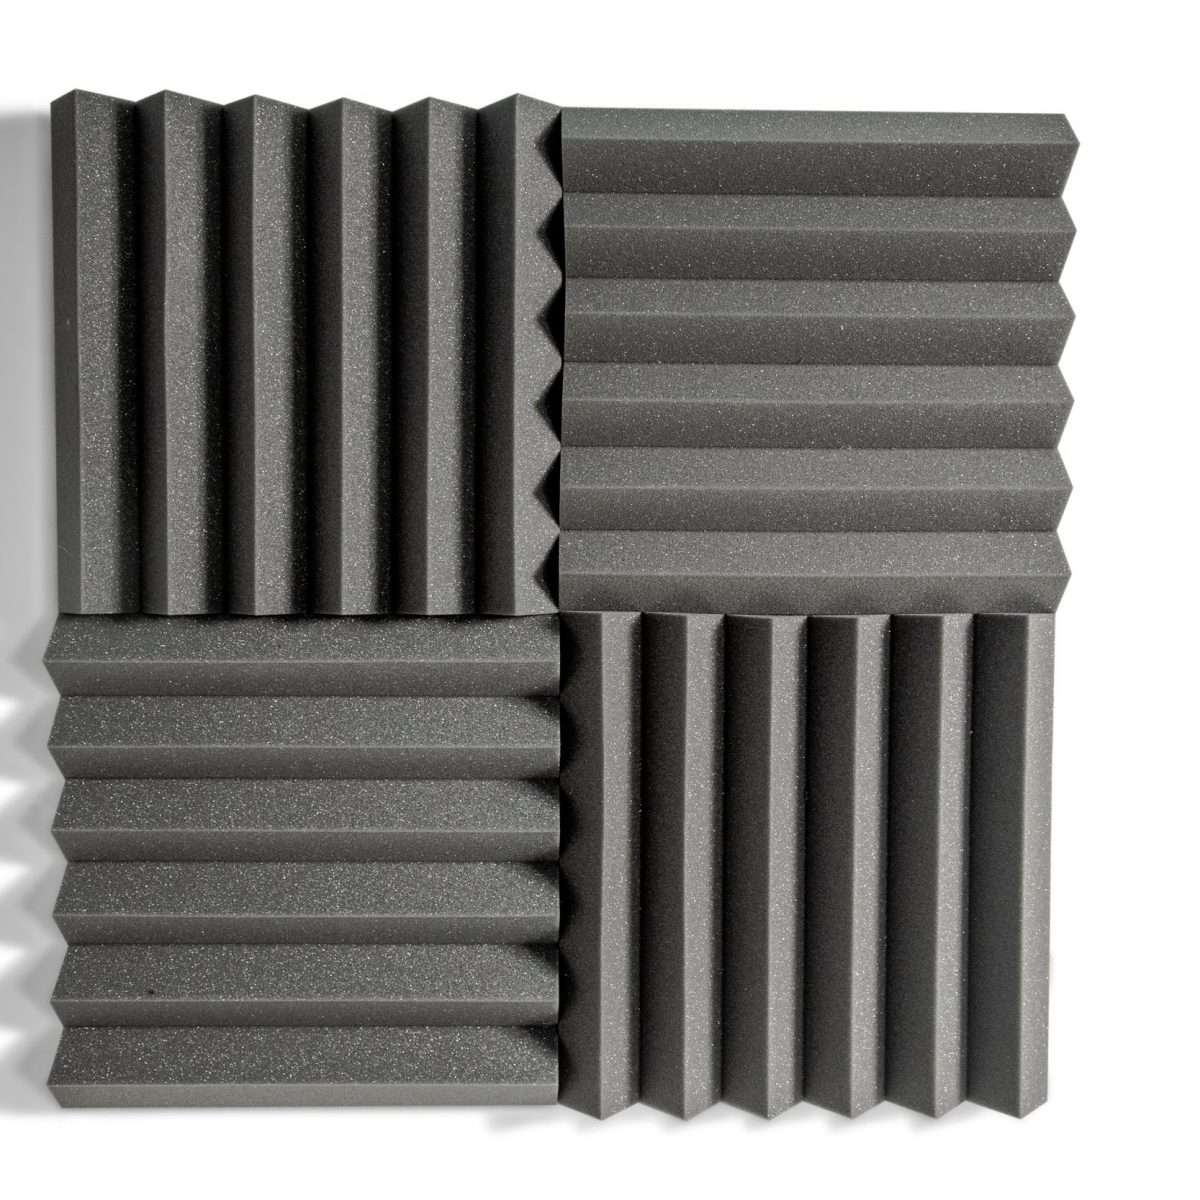 sound zero ridge tile can be used for a range of applications